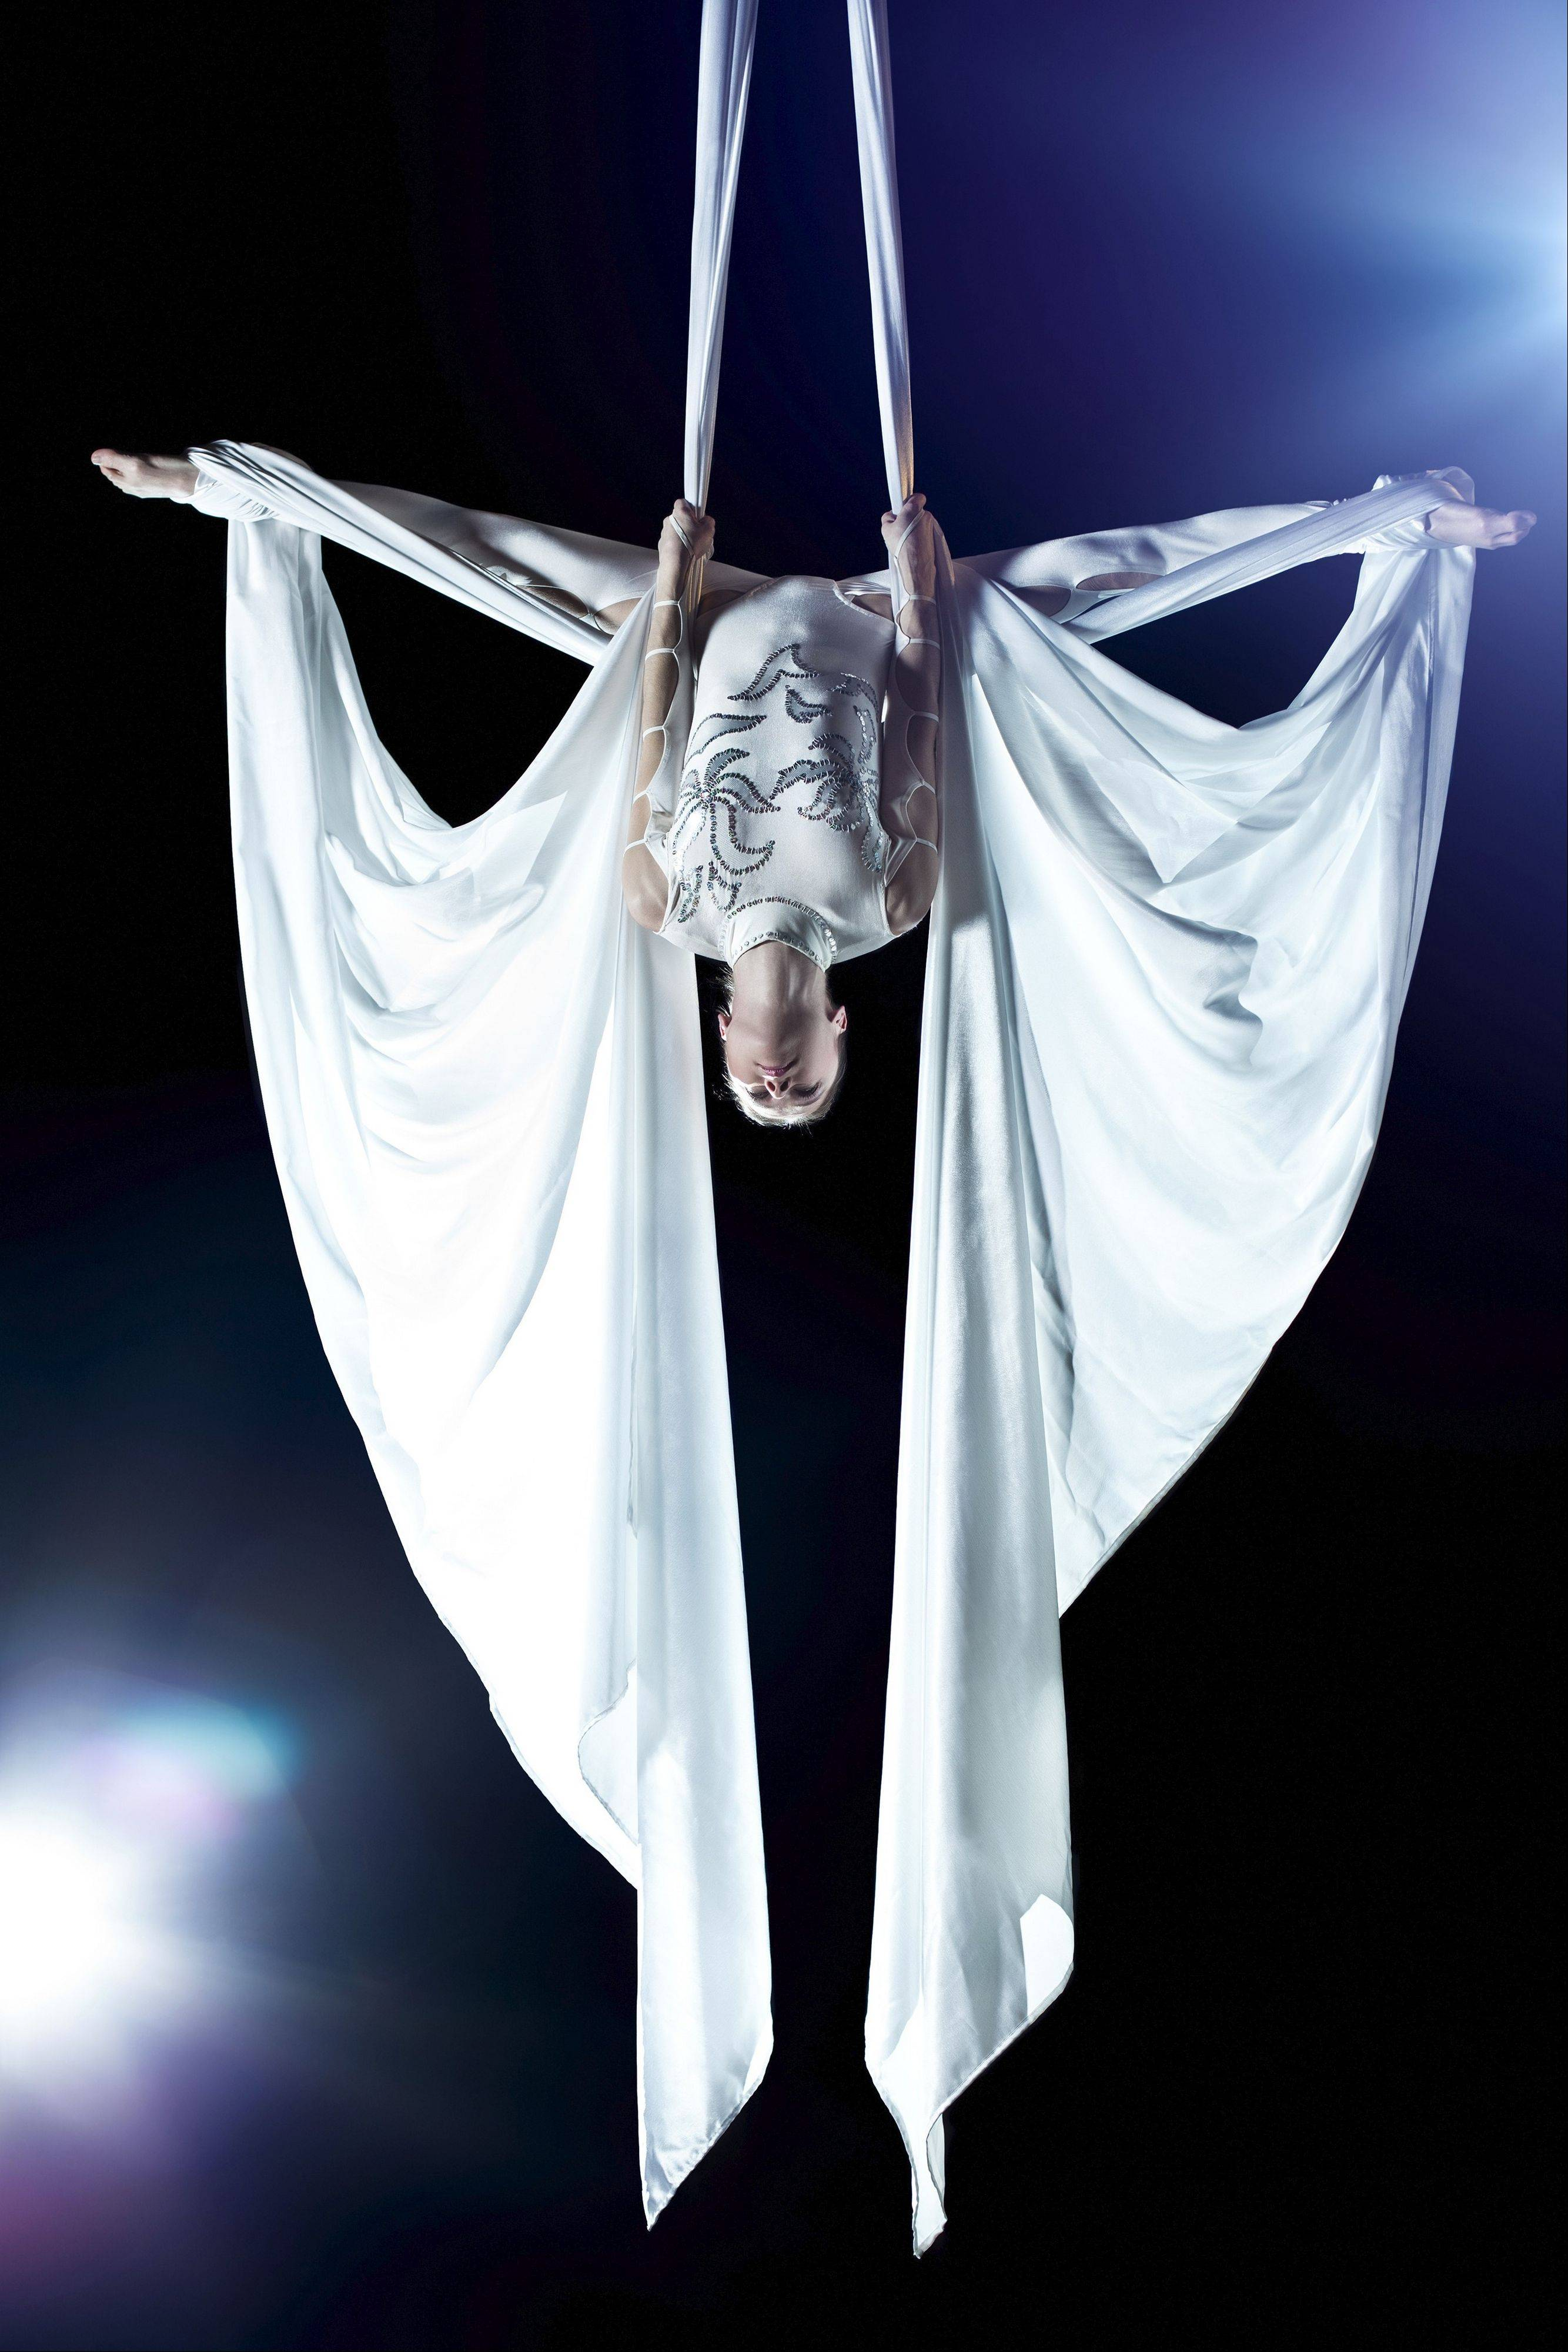 �Cirque Sephira,� billed as the �World�s First Spiritual Cirque,� is one of the attractions of the Whole Life Expo, which comes to the Renaissance Schaumburg Hotel and Convention Center in Schaumburg this weekend.